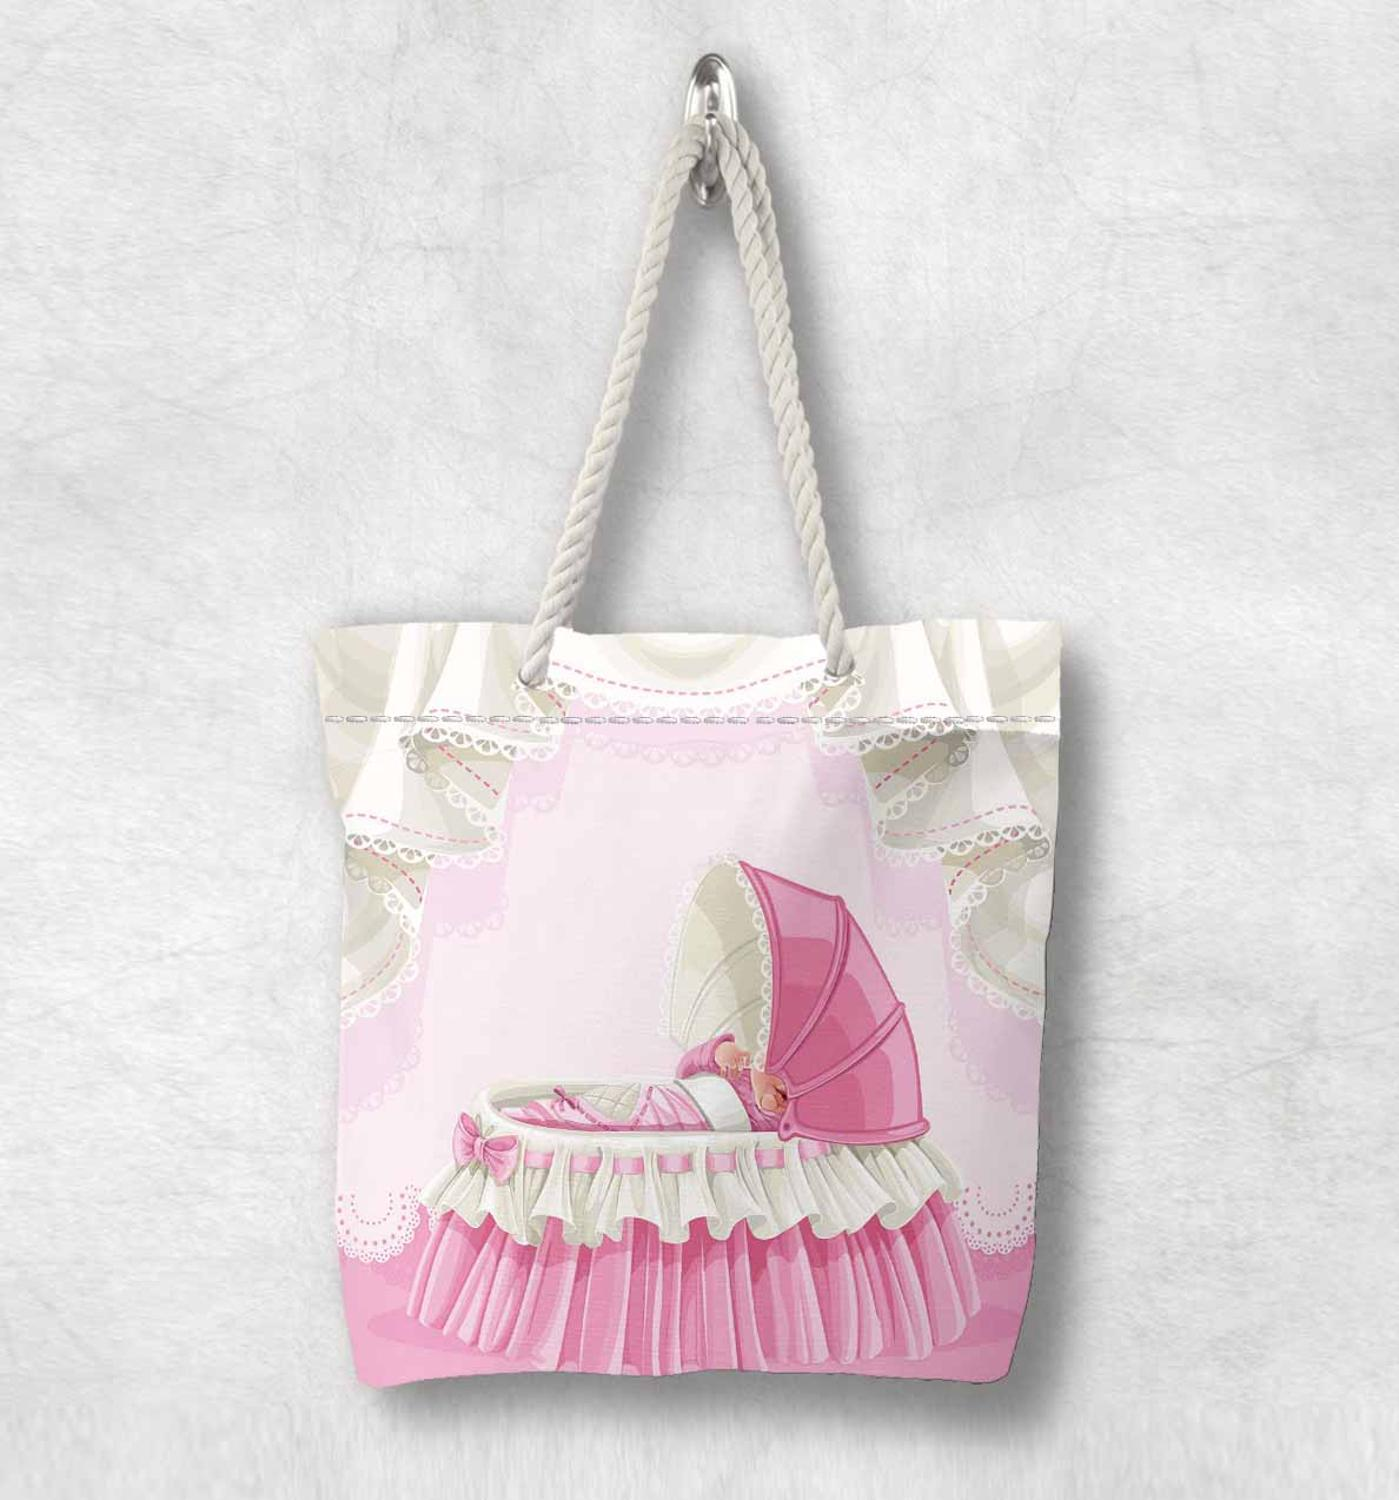 Else Pink White Little Baby Cradle New Fashion White Rope Handle Canvas Bag  Cartoon Print Zippered Tote Bag Shoulder Bag